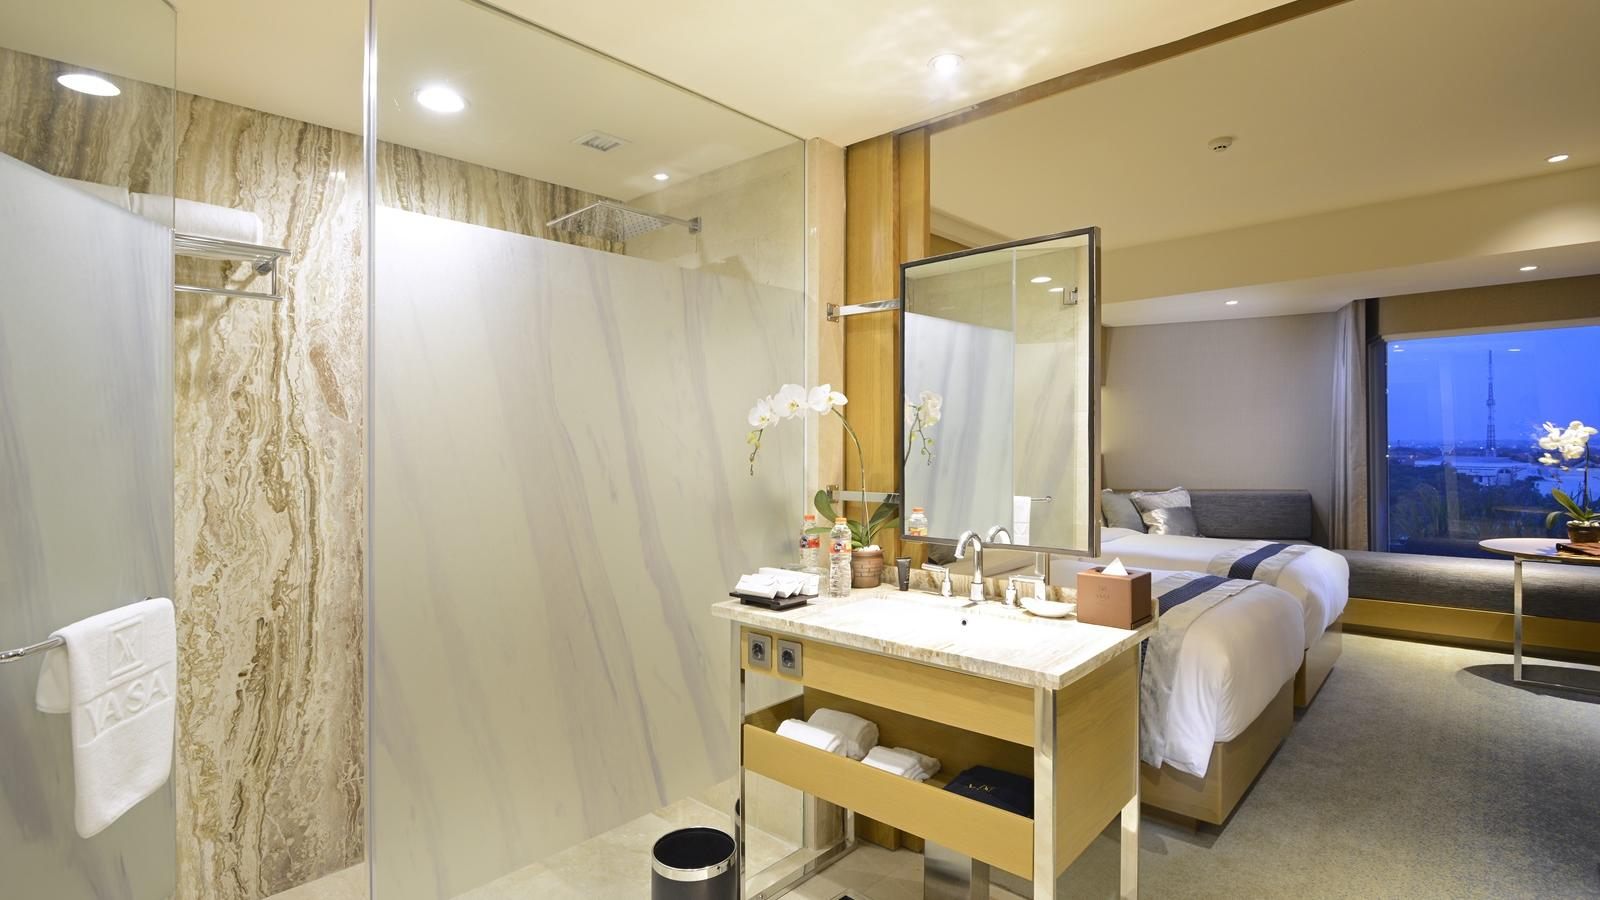 Bathroom of Select Room